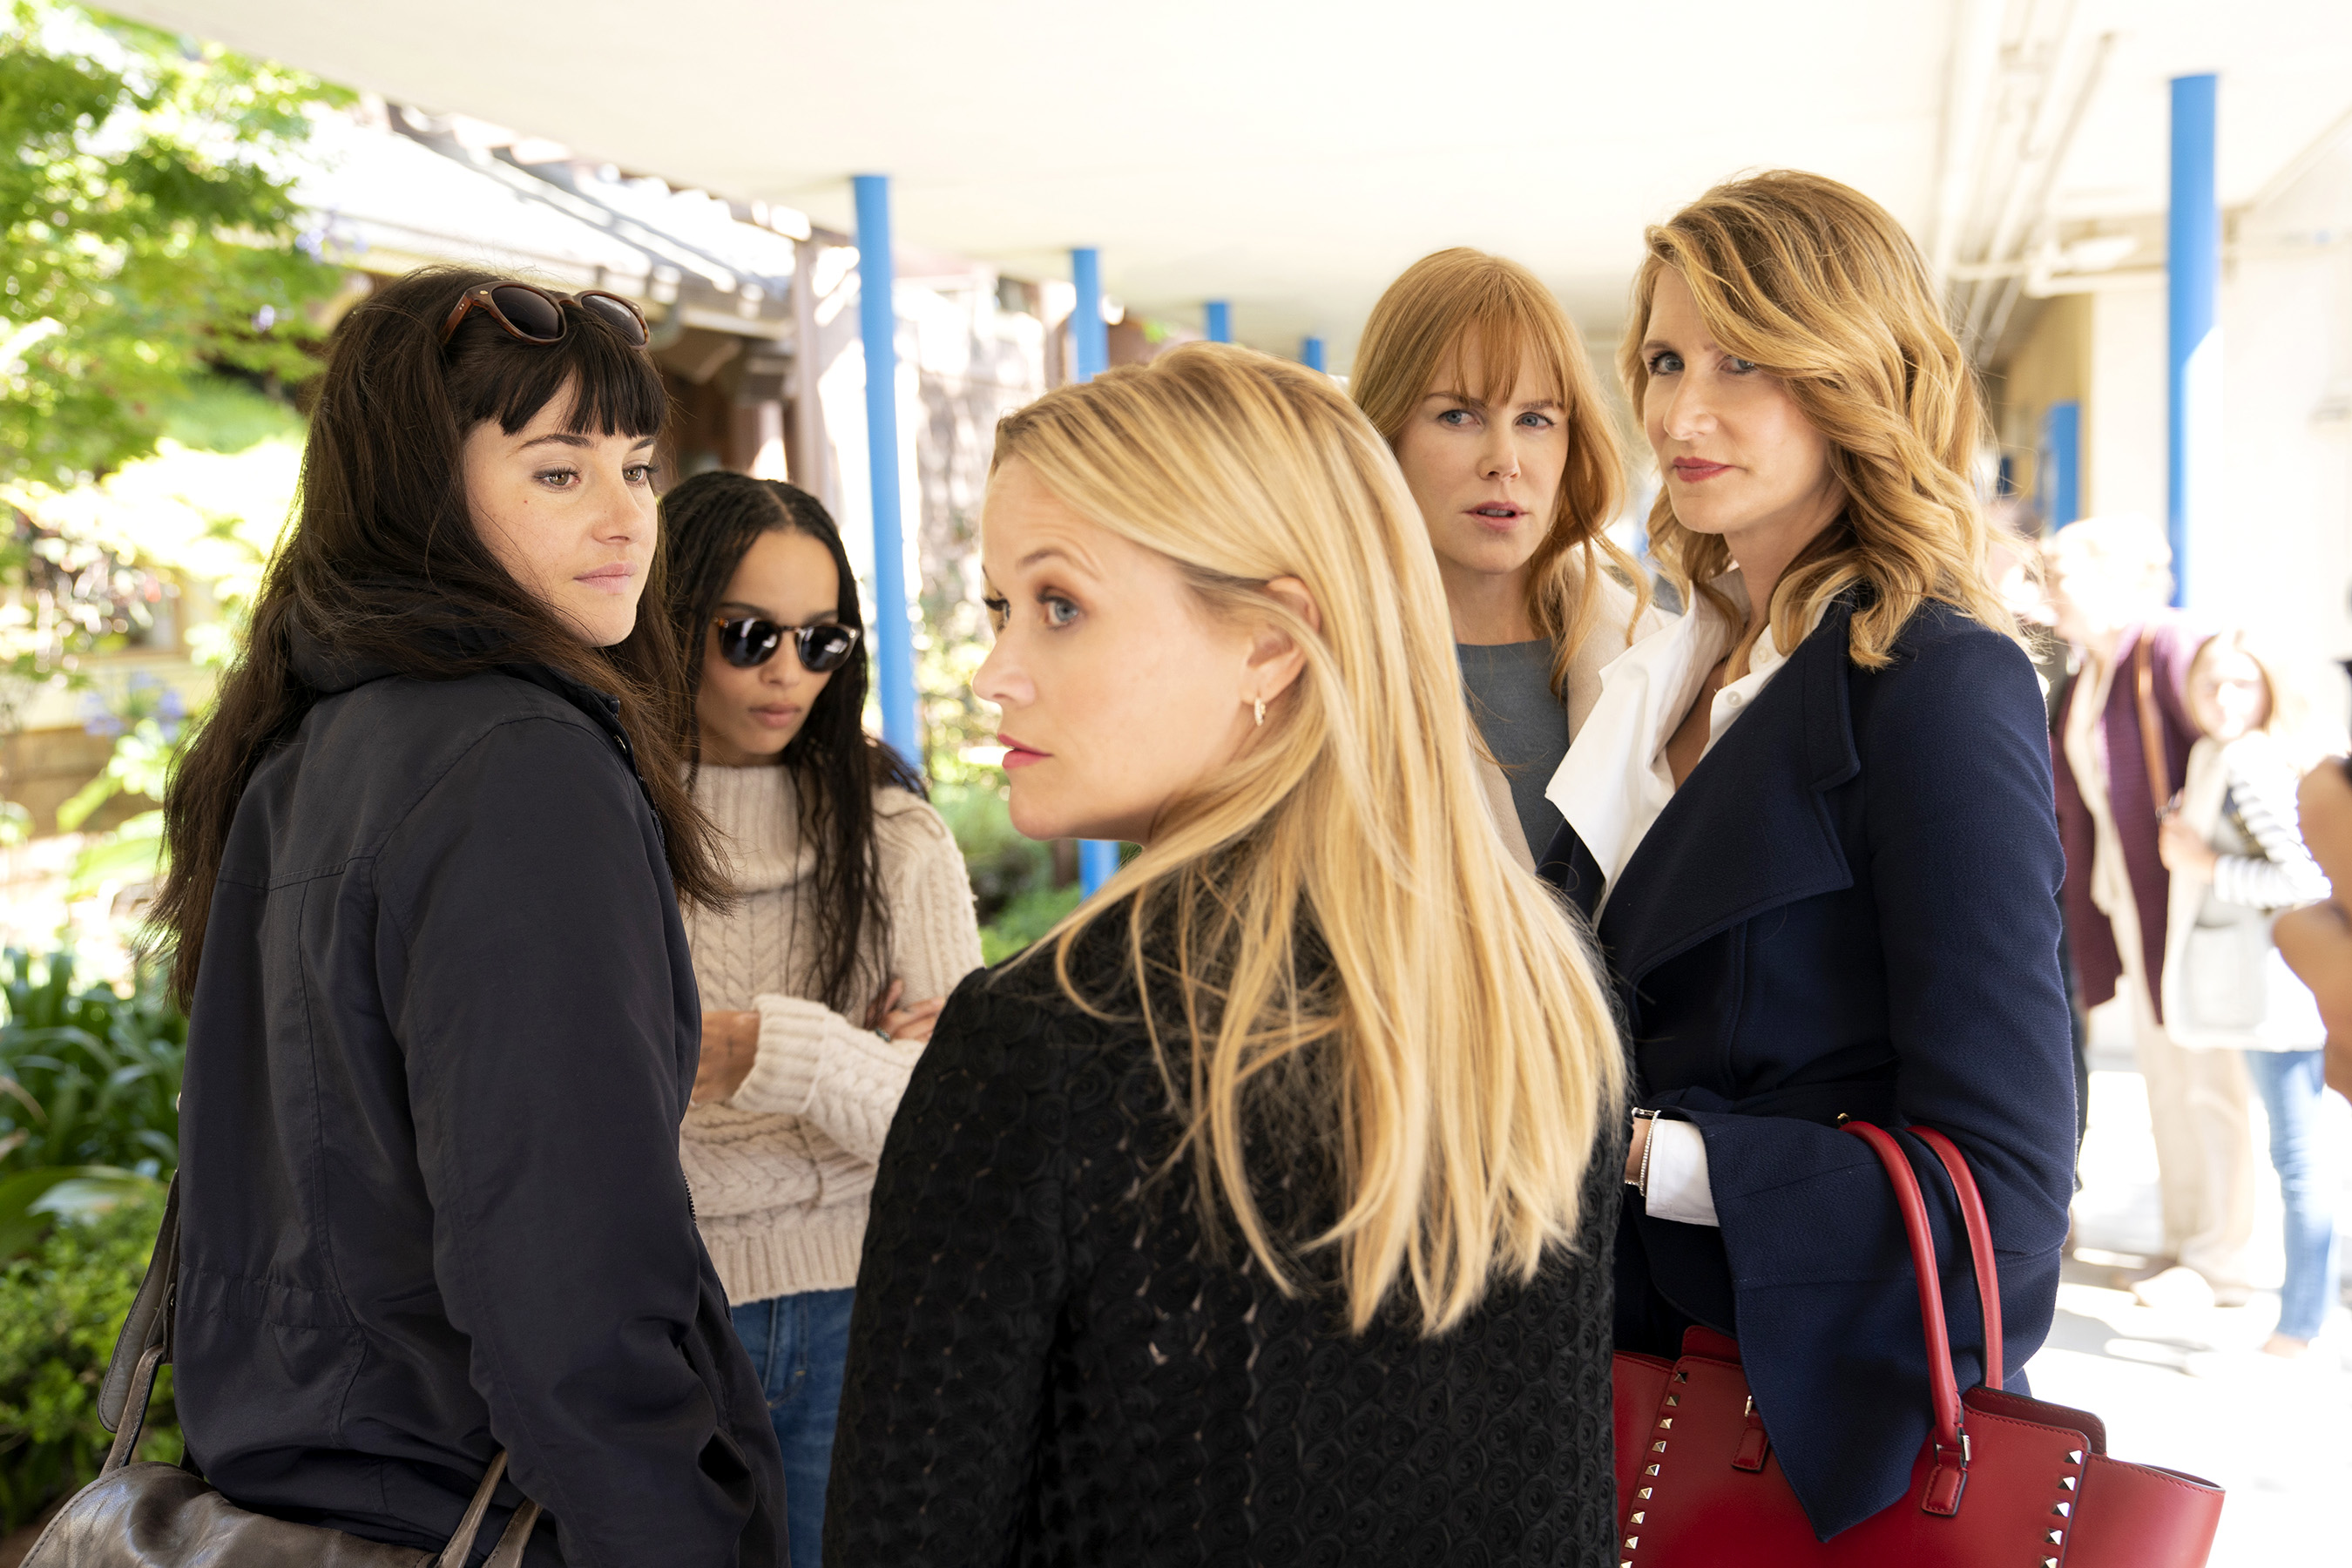 Big Little Lies' Season 2 Finale Delights and Divides Viewers: 'What a Cliffhanger'